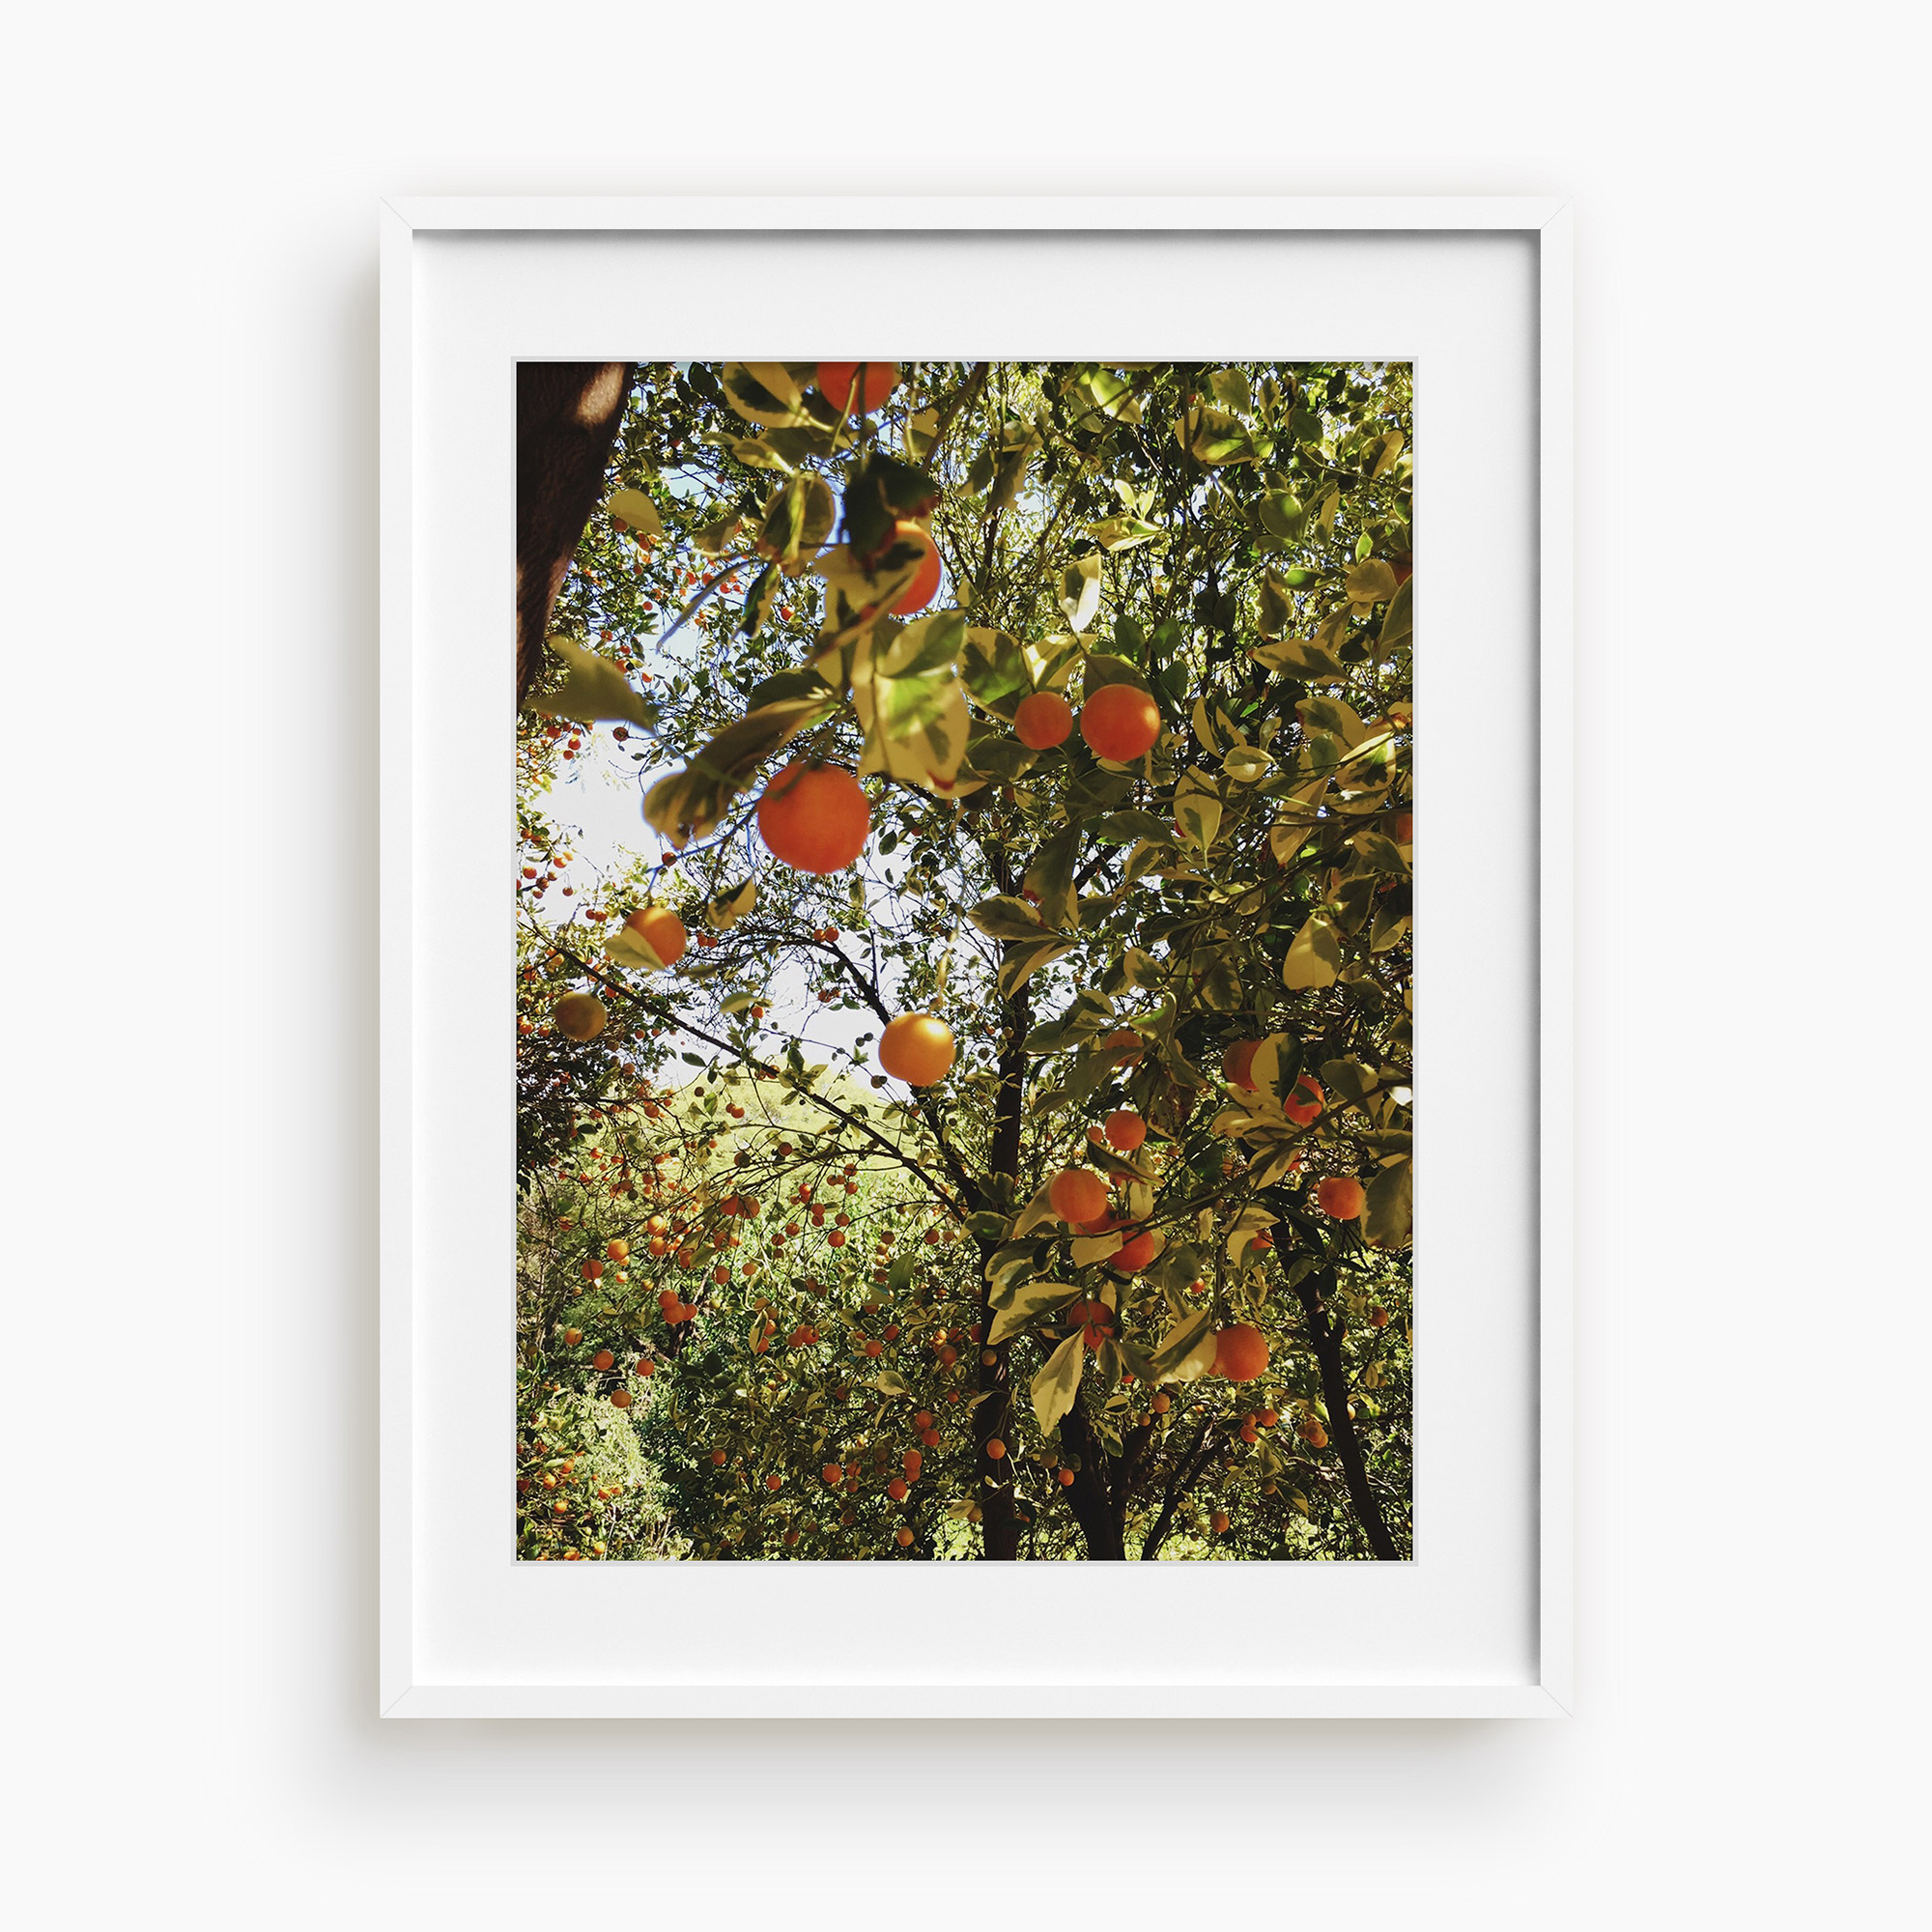 Tappan-Collective-Lani-Trock's-Abundance-With-Ease - Easily search for fine art with Tappan's, finding hidden gems such as this photographic print by Lani Trock. $120, tappancollective.com